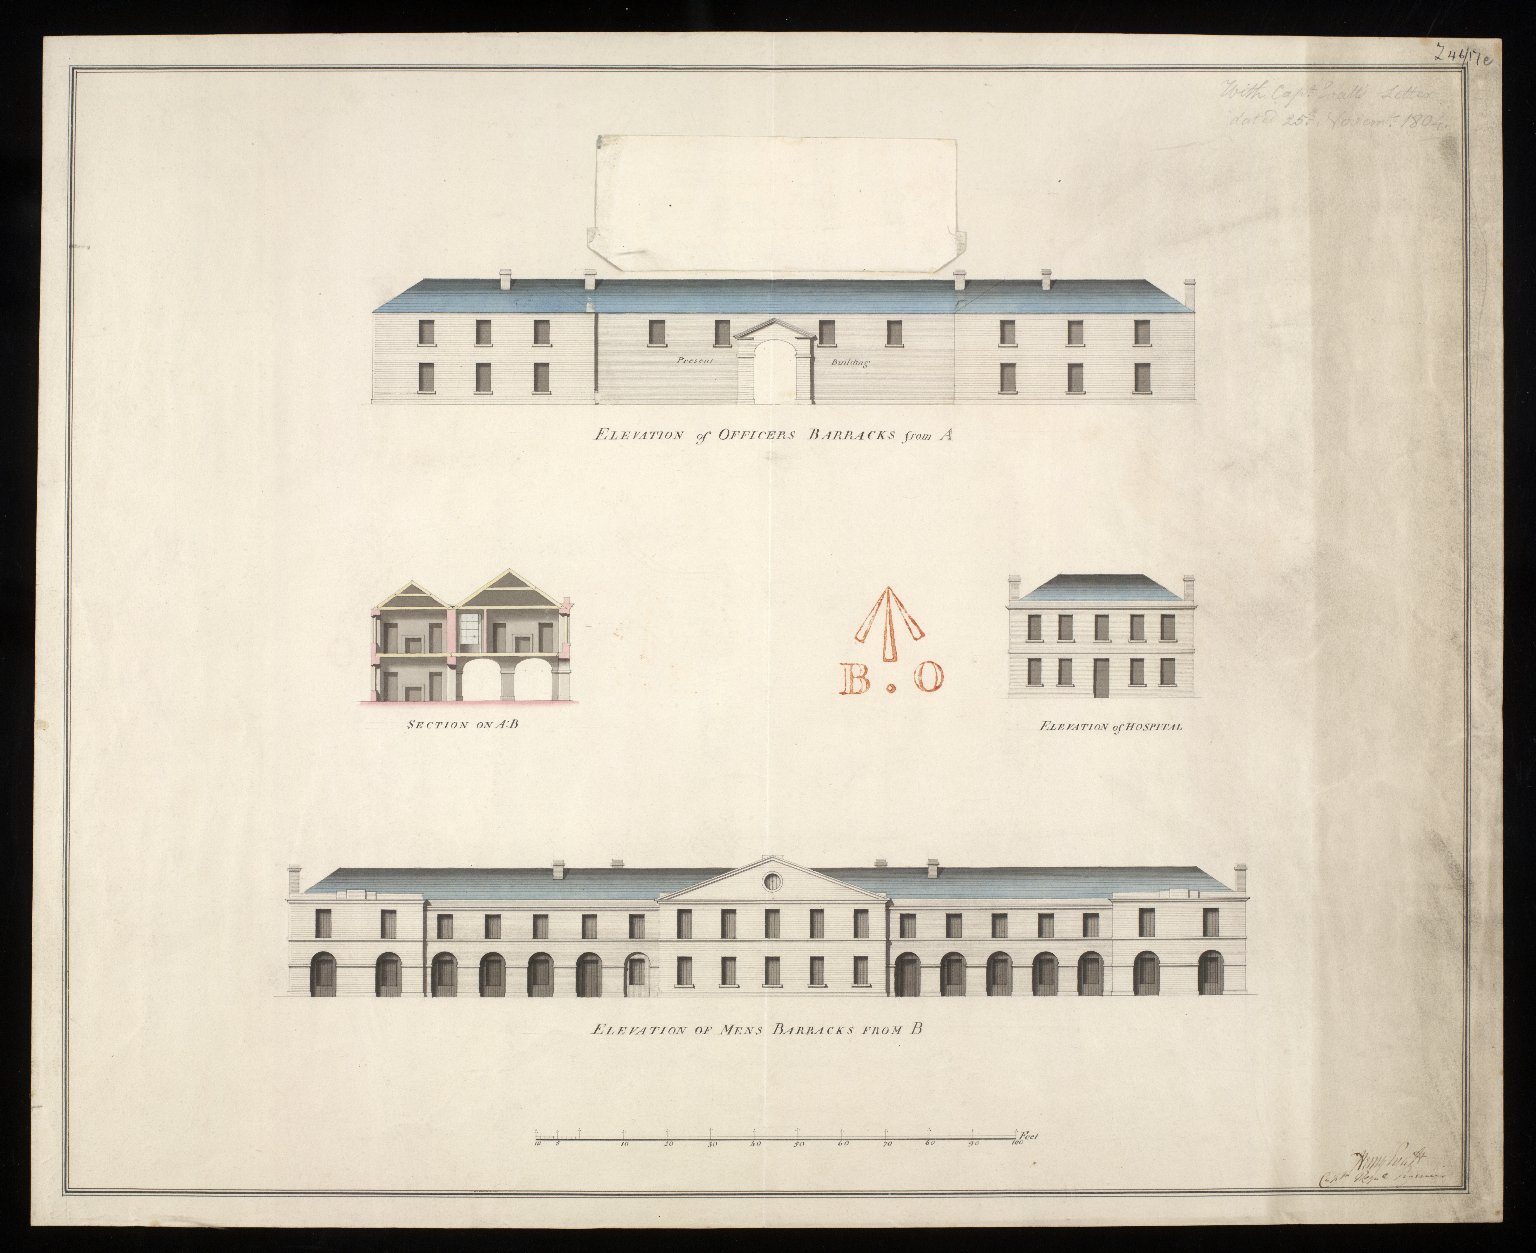 [Leith Battery] elevation of officers barracks from A : elevation of mens barracks from B; elevation of hospital; section on AB [2 of 2]